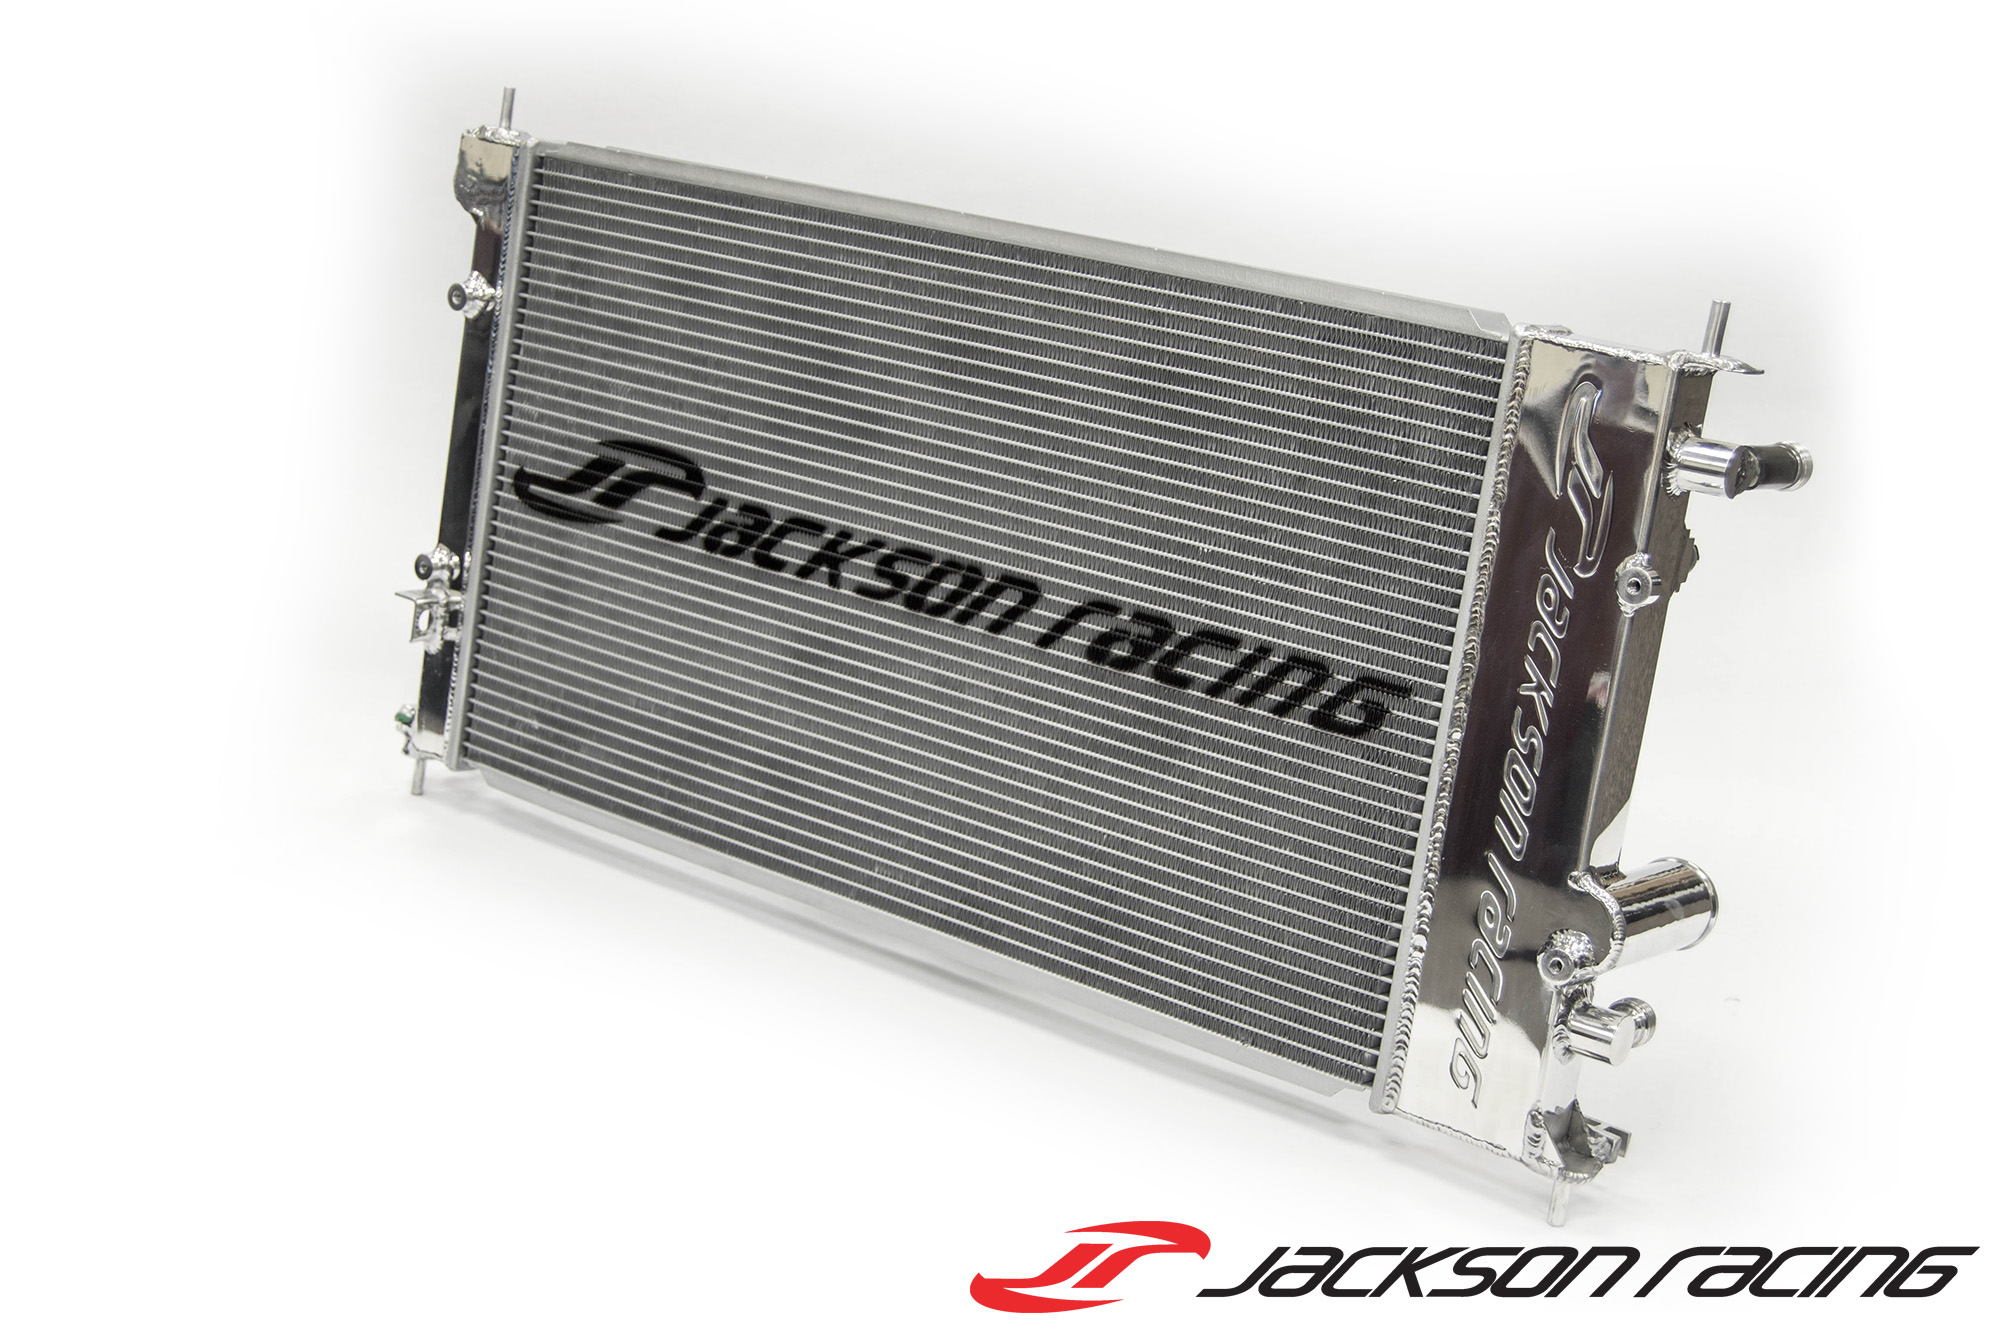 Auto Mobile Engine Oil Cooler : Fr s brz dual radiator oil cooler jackson racing